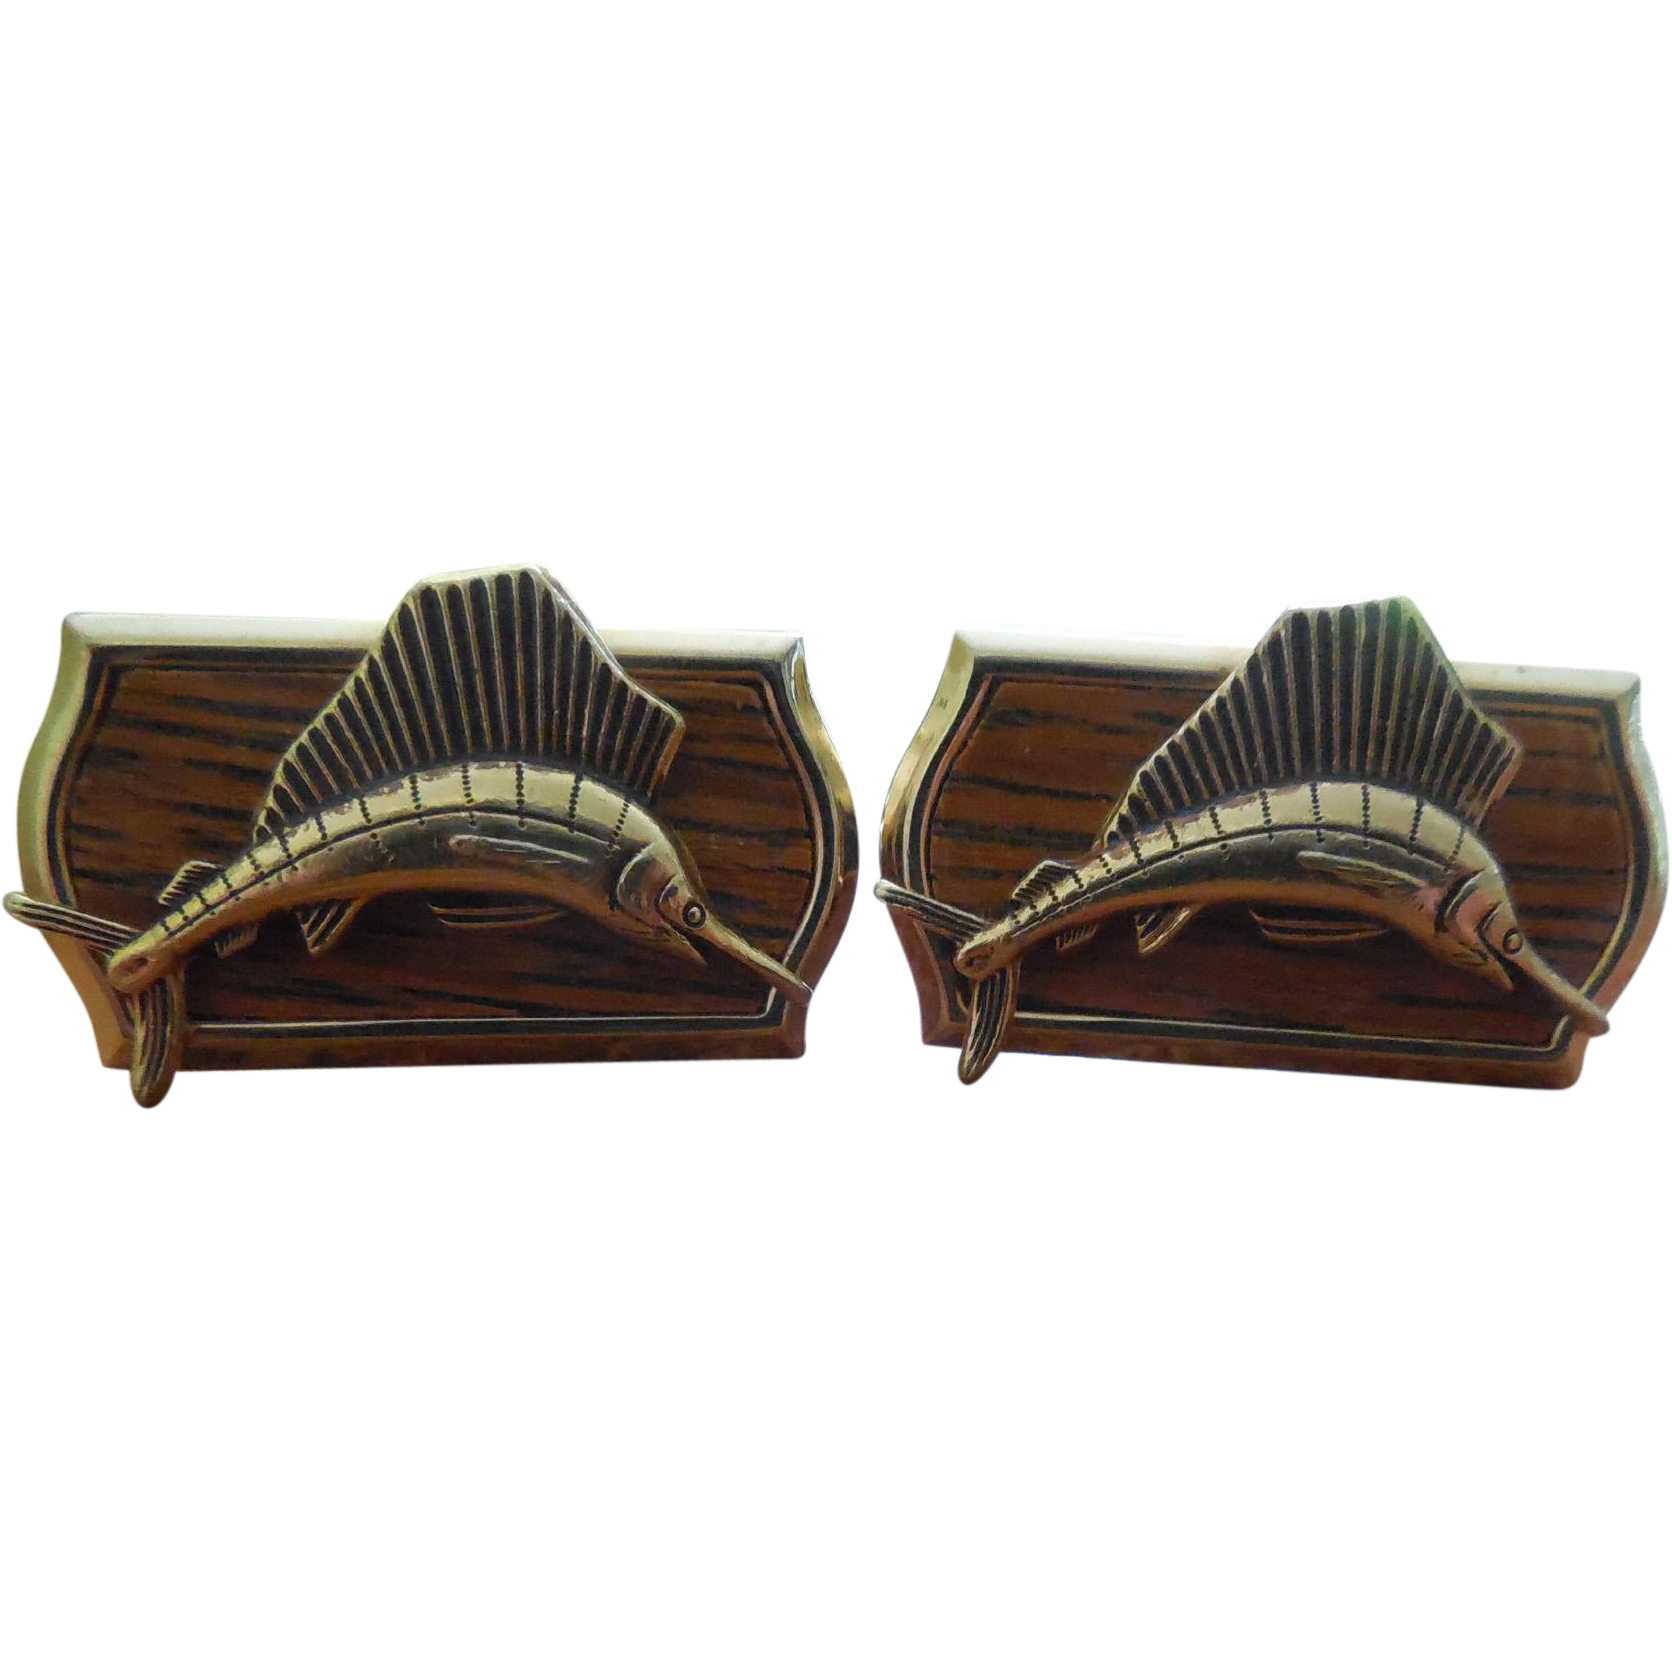 Vintage Signed Hickok Cufflinks With Sailfish Marlin Fronts Cuff Links